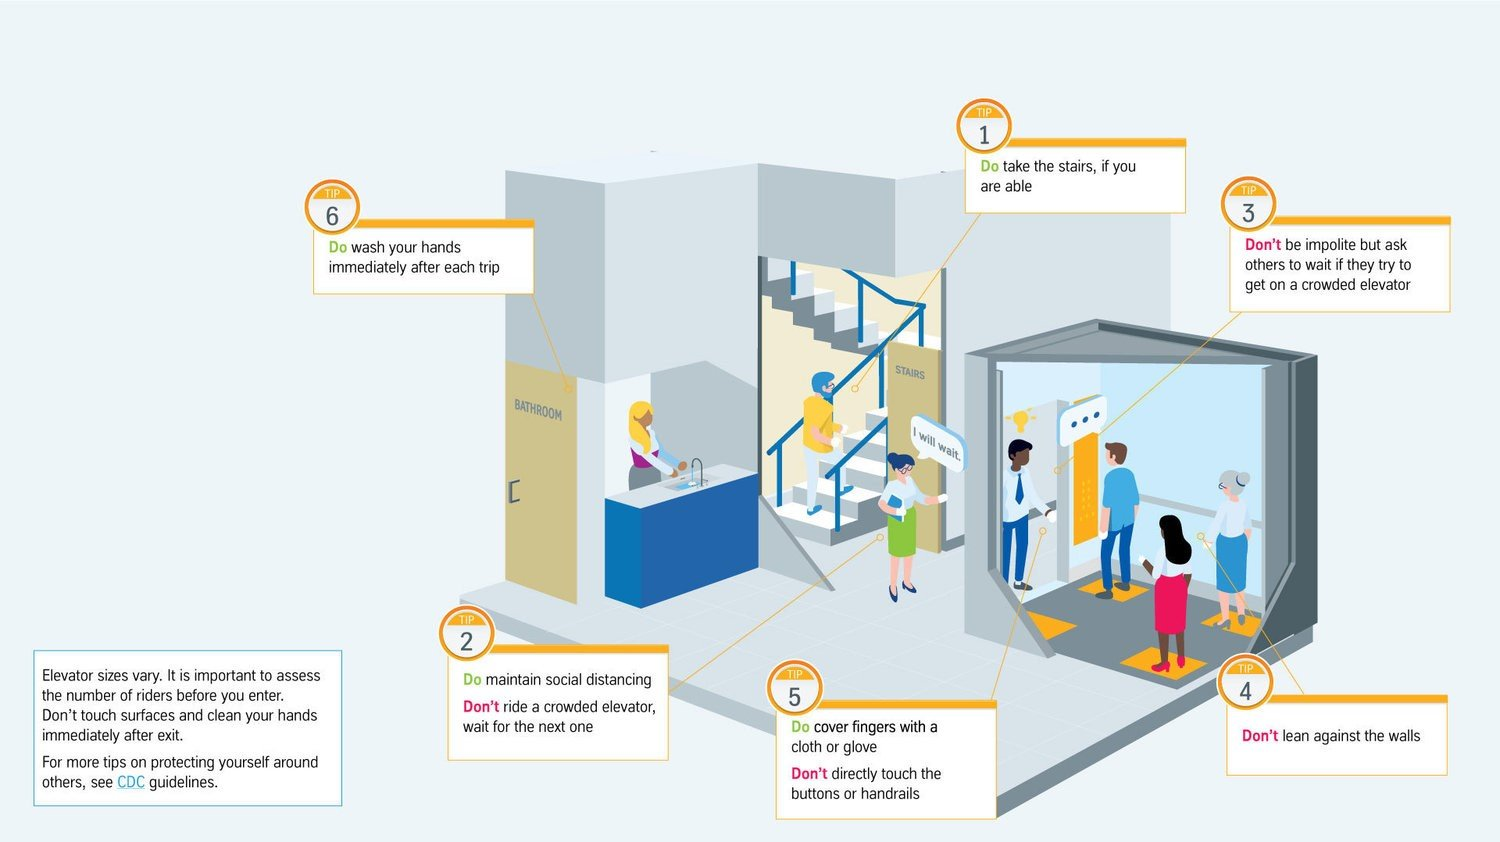 A healthy, new process for elevator etiquette during COVID-19